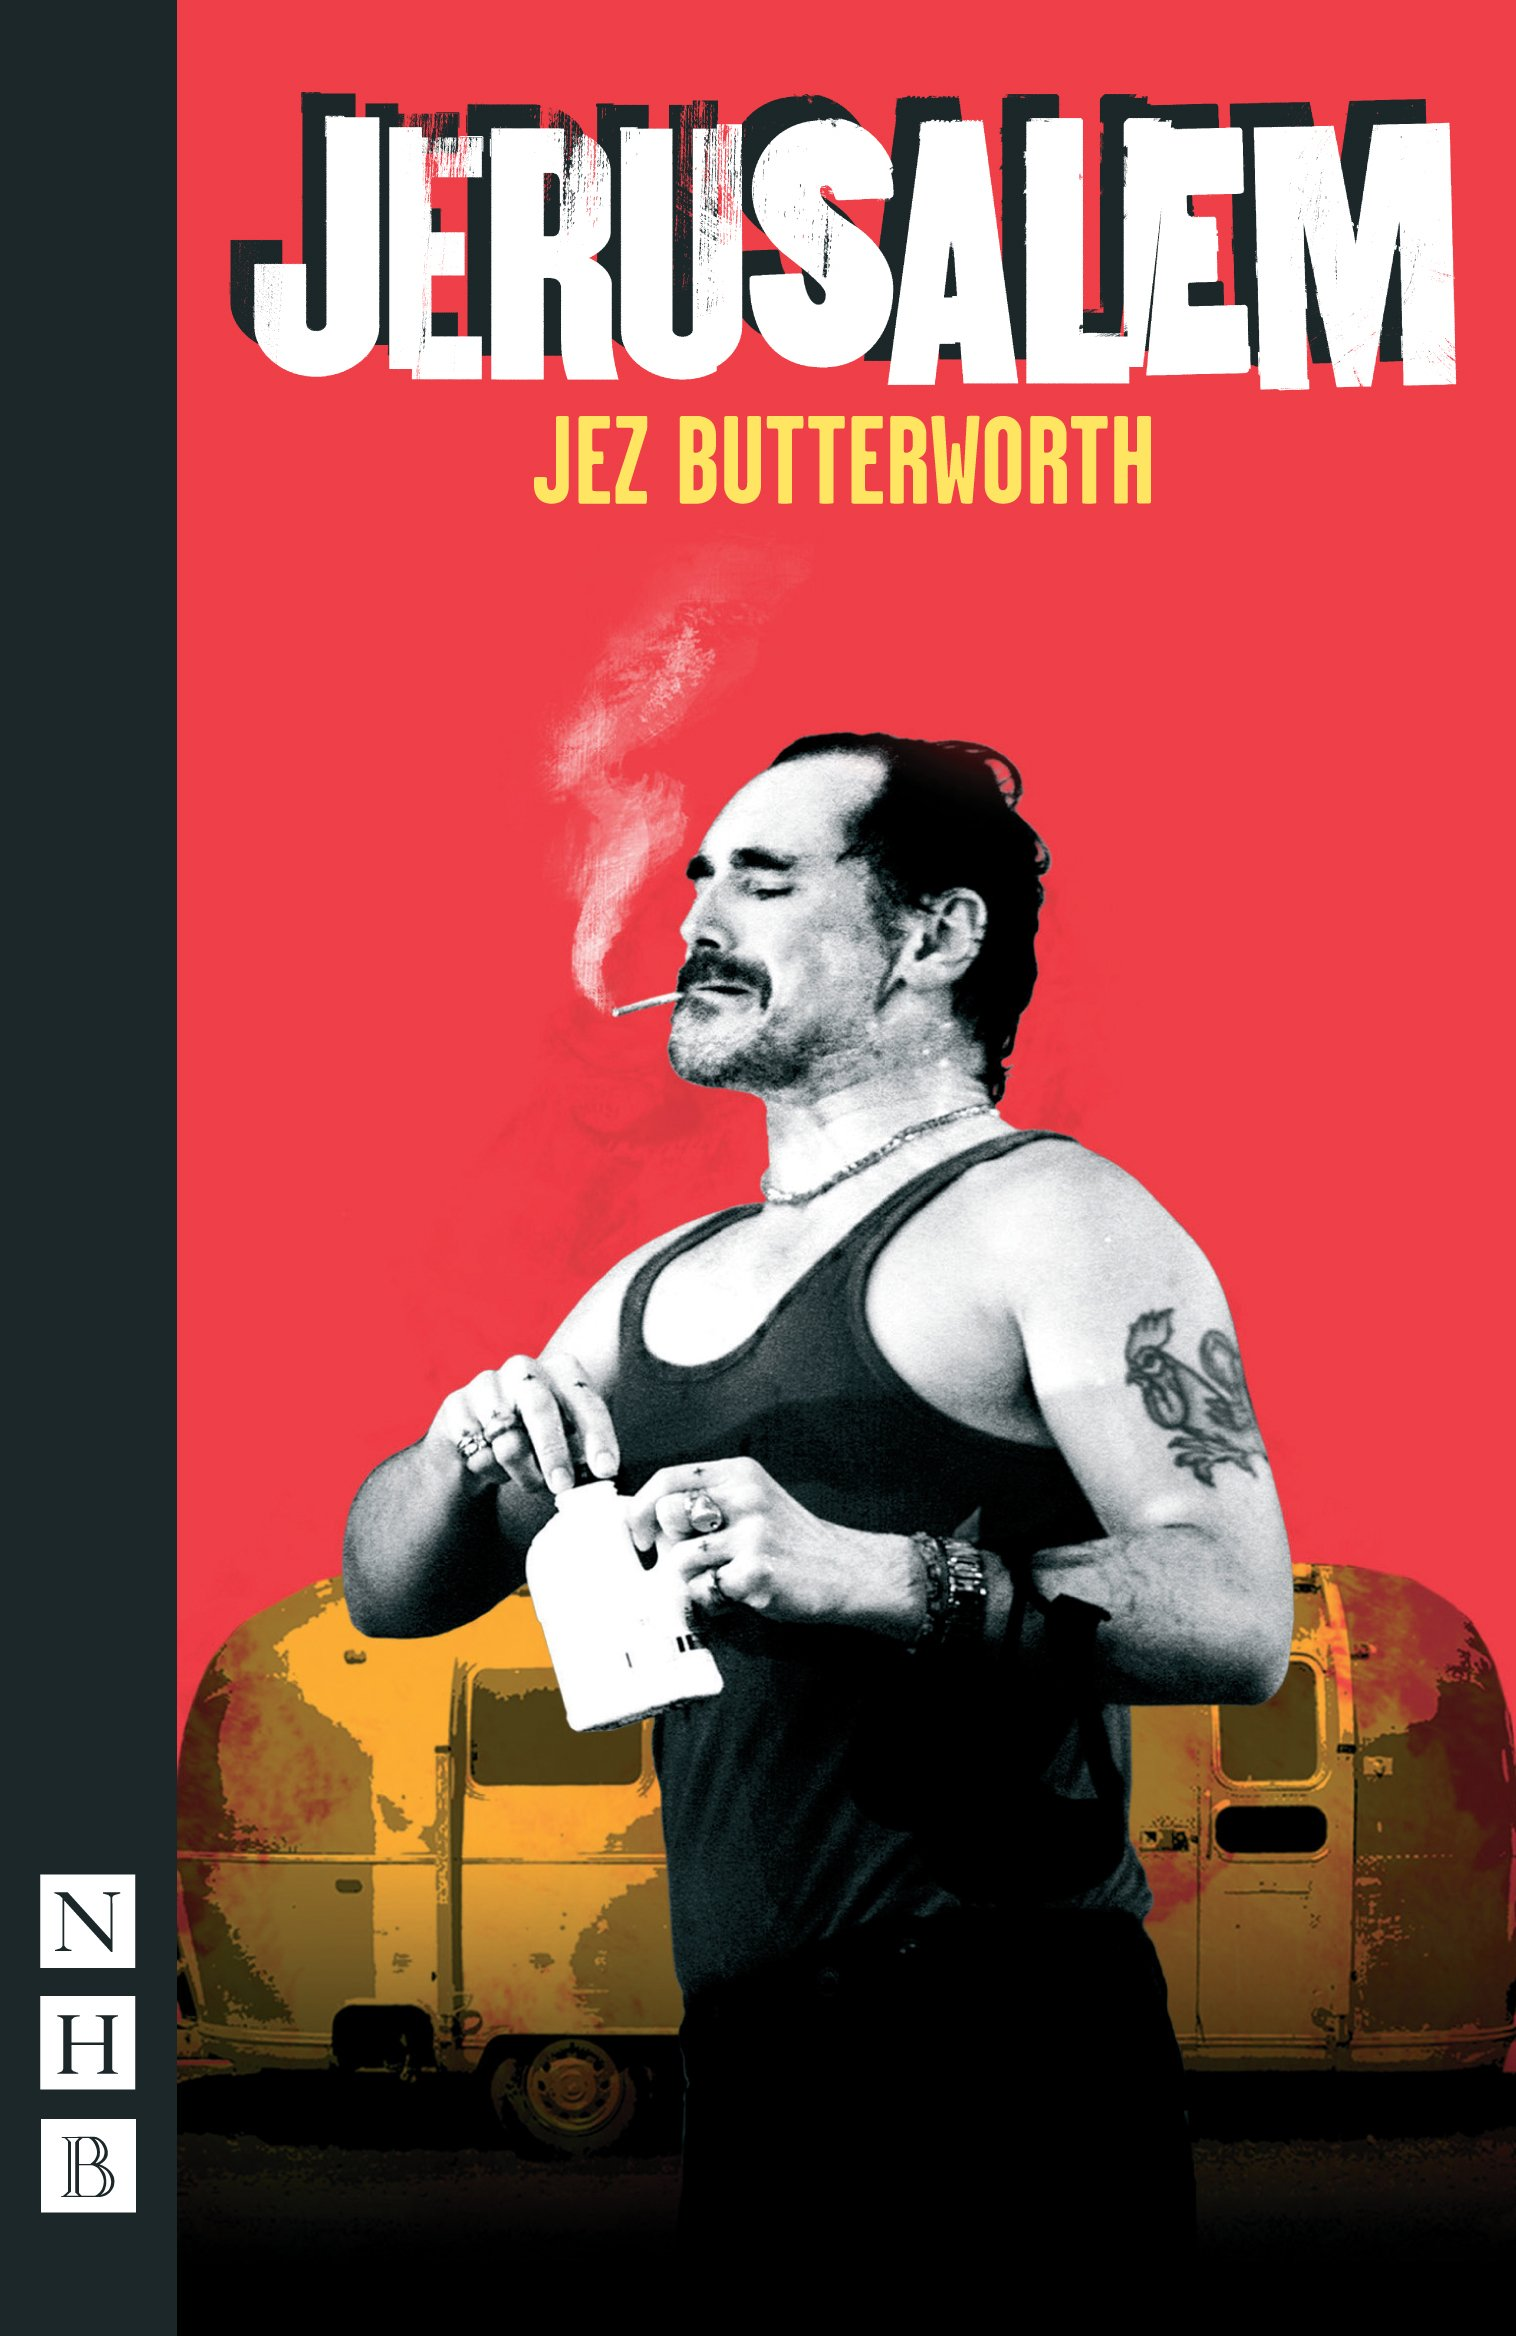 Read More From Jez Butterworth